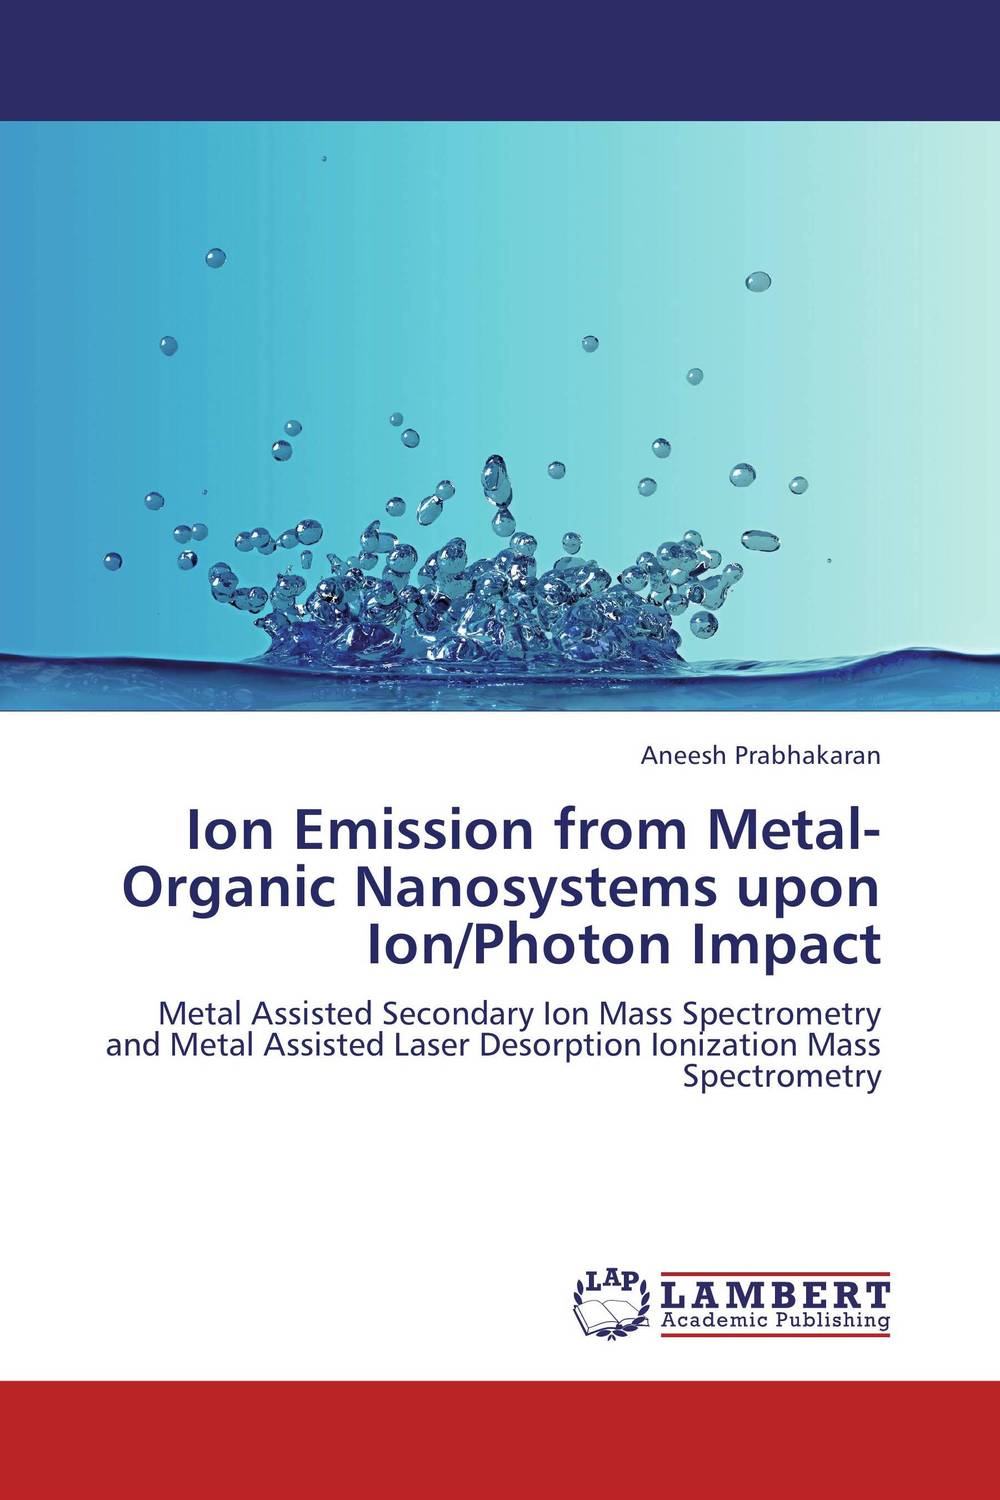 Ion Emission from Metal-Organic Nanosystems upon Ion/Photon Impact jai prakash embedded metal nanoparticles by ion beam mixing